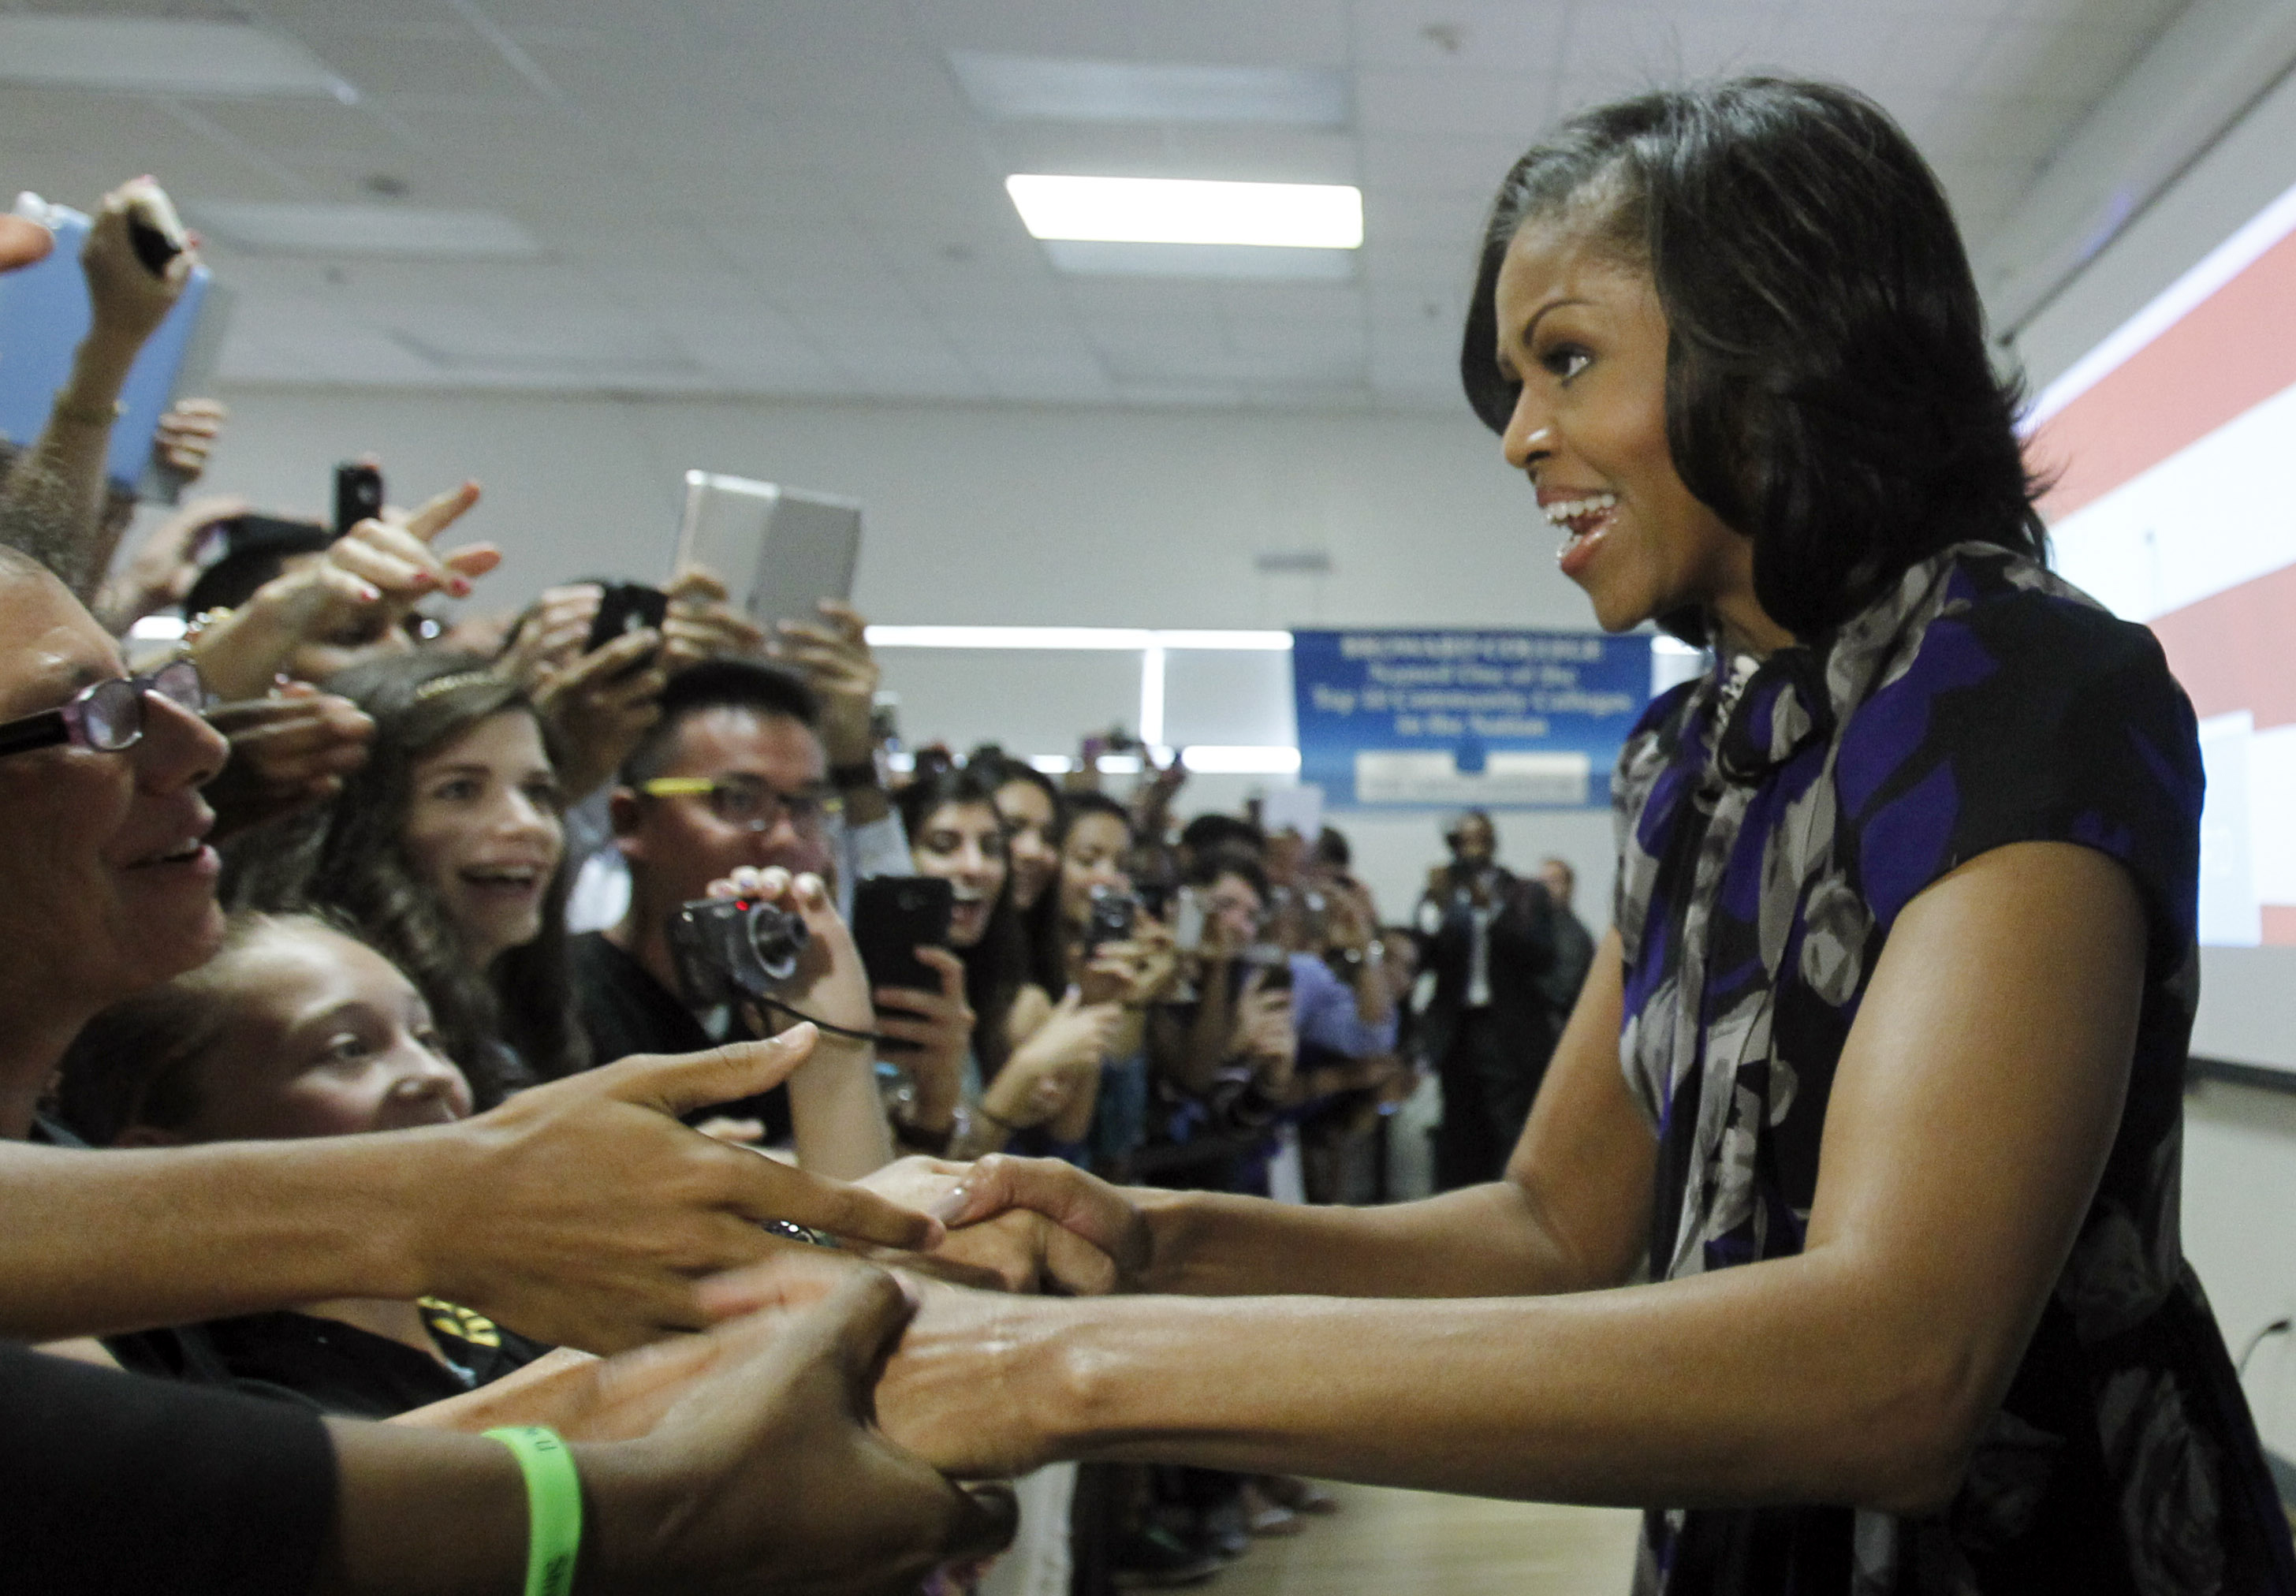 On the campaign trail: Michelle greets supporters at Broward College in Davie, Fla., on Oct. 22, 2012, where she rallied grass-root supporters and spoke of what's at stake in the election for Floridians. Michelle was seen as an asset on the campaign trail, where she often drew large crowds.